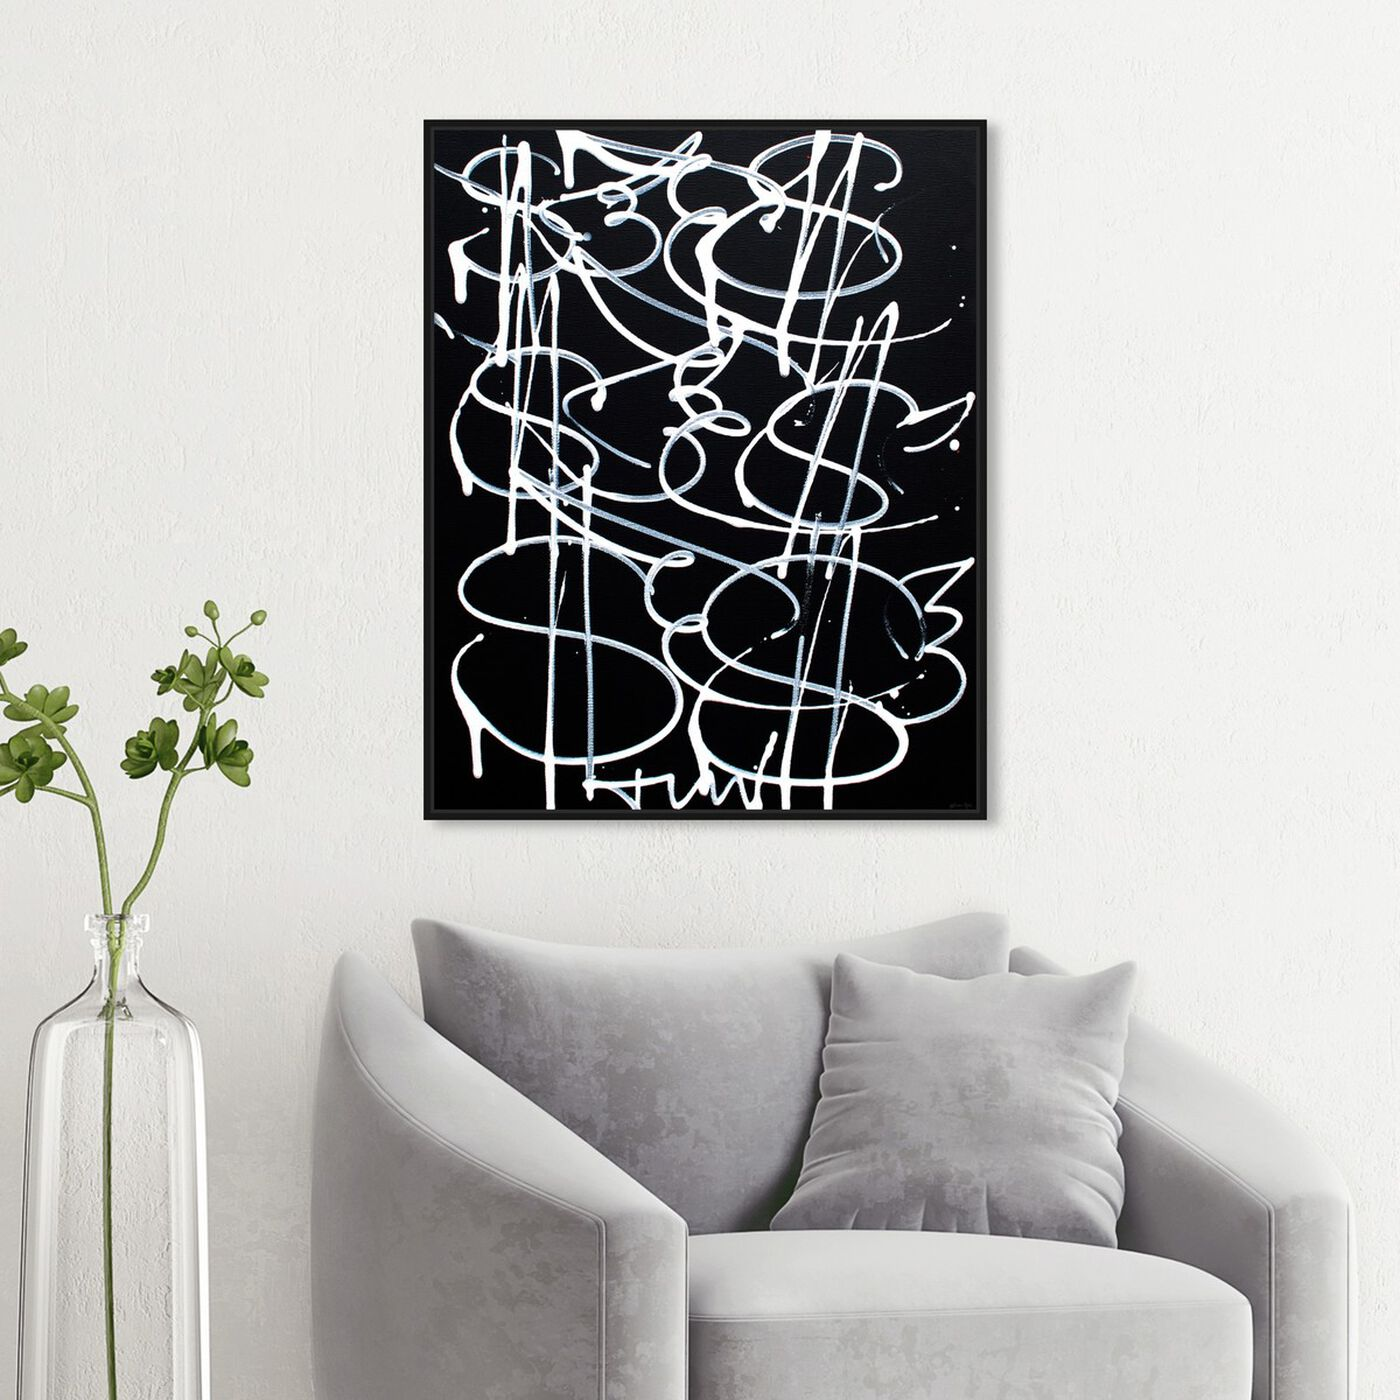 Hanging view of Money Fly by Tiago Magro featuring abstract and paint art.